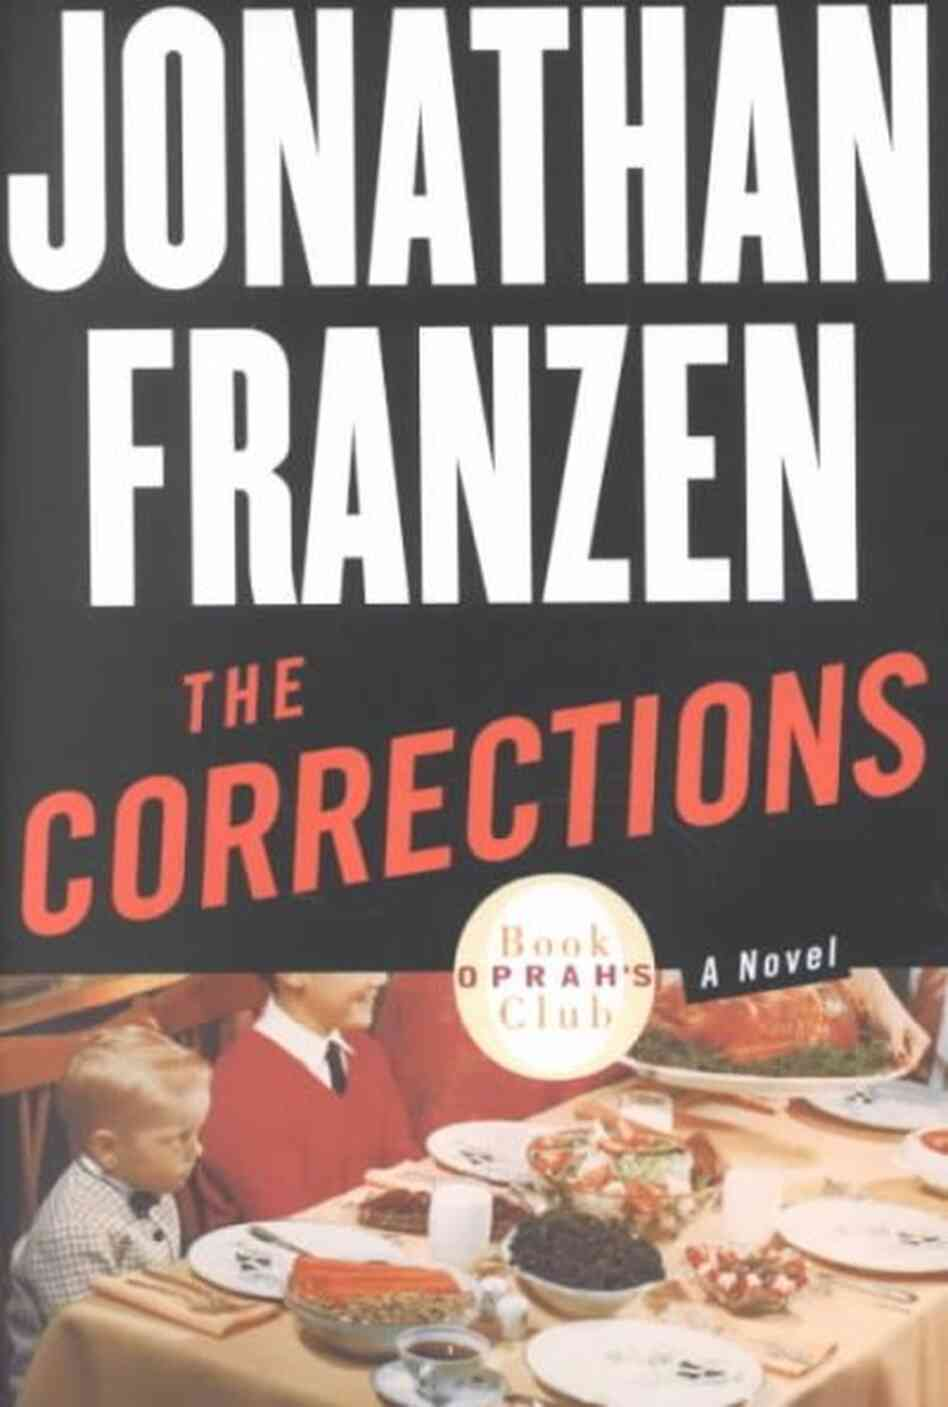 Franzen's The Corrections Is A Satirical Drama That Focuses On The  Dysfunctional Lambert Family Each Member Has Their Own Flaws And Struggles